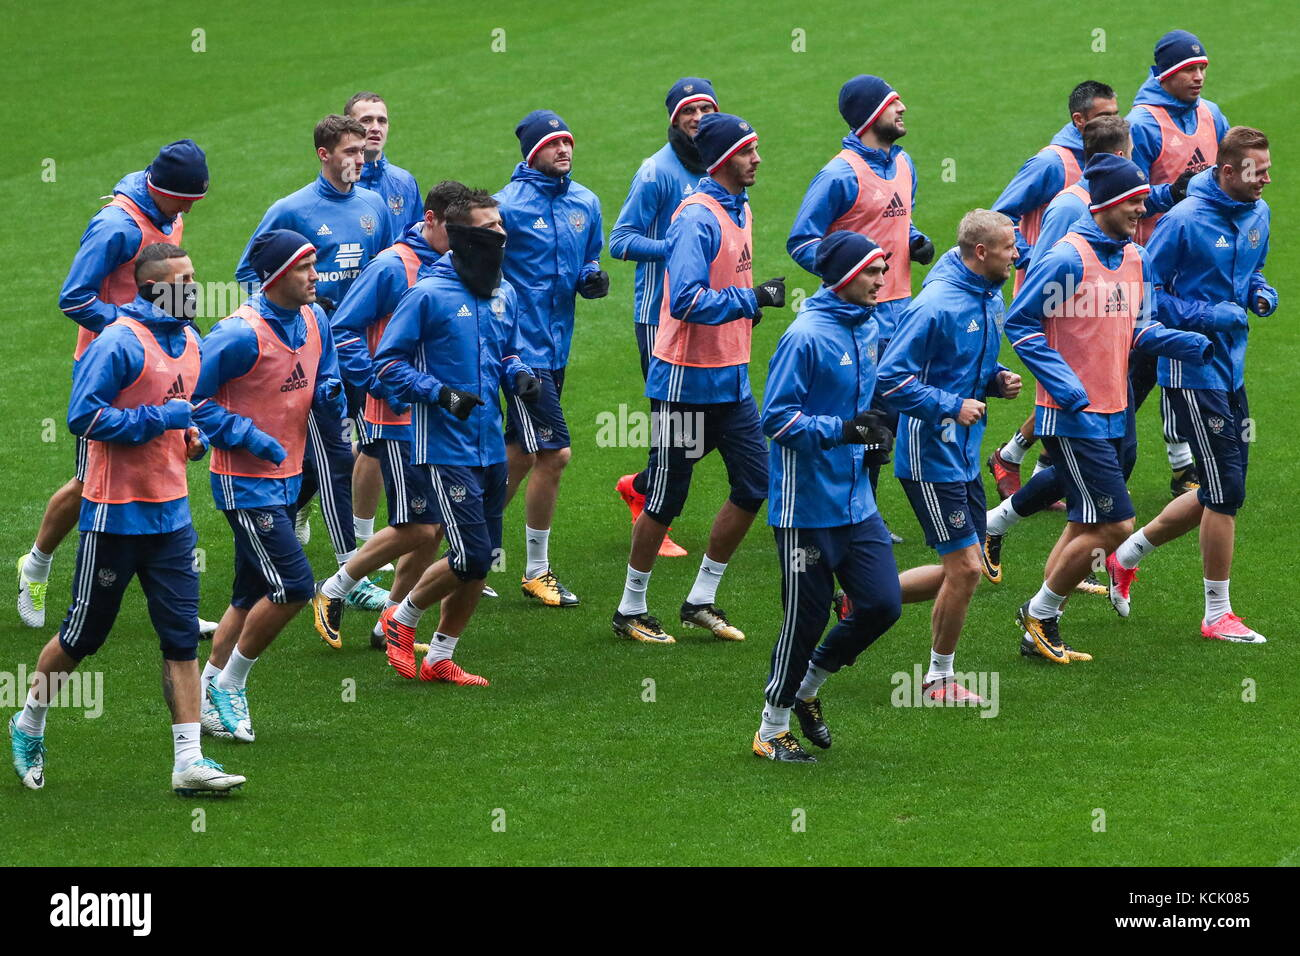 Moscow, Russia. 6th Oct, 2017. Members of the Russian men's national football team during a training session - Stock Image